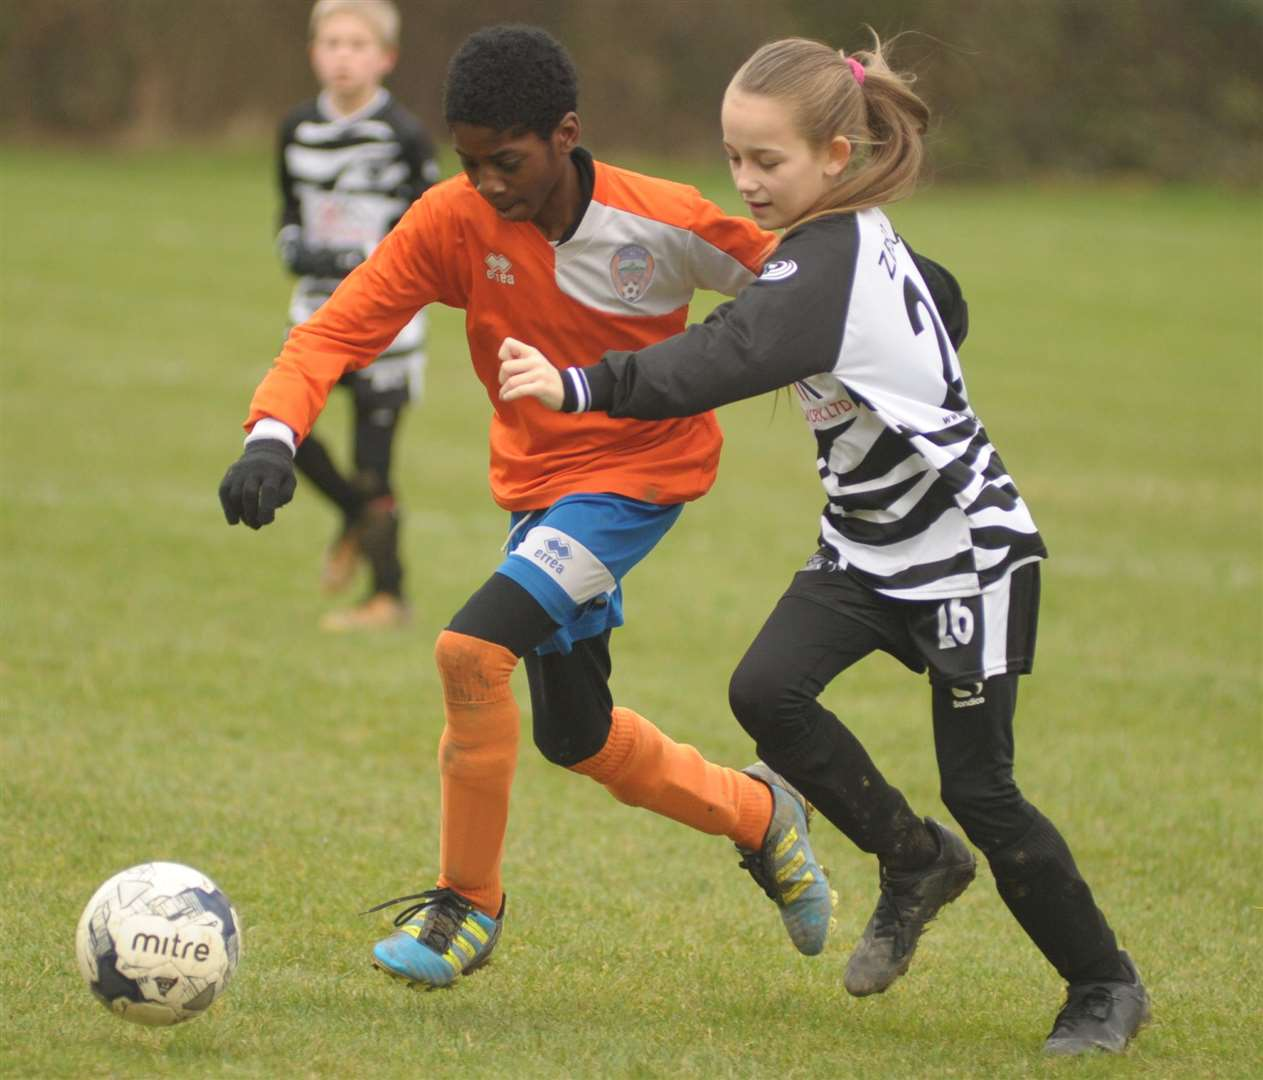 Cuxton 91 Crusaders and Milton & Fulston United under-11s go head-to-head Picture: Steve Crispe